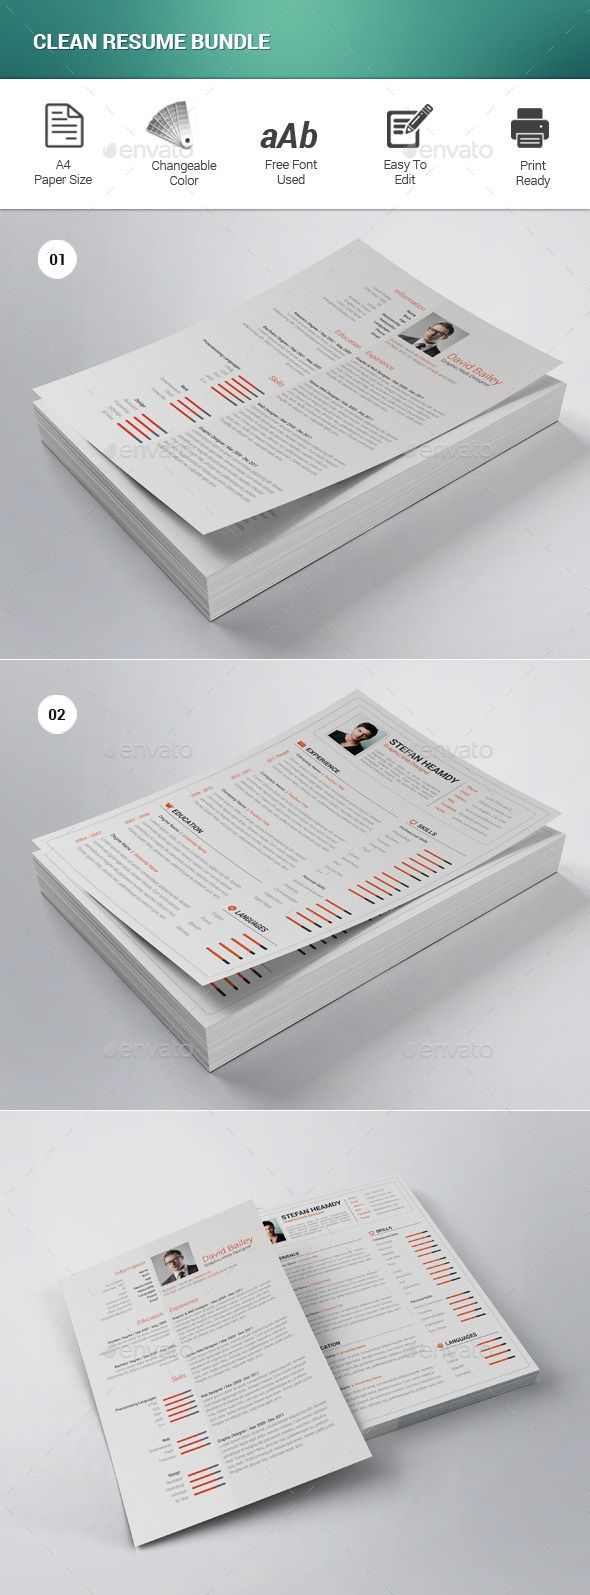 988 best Creative Resume Template images on Pinterest | Font logo ...